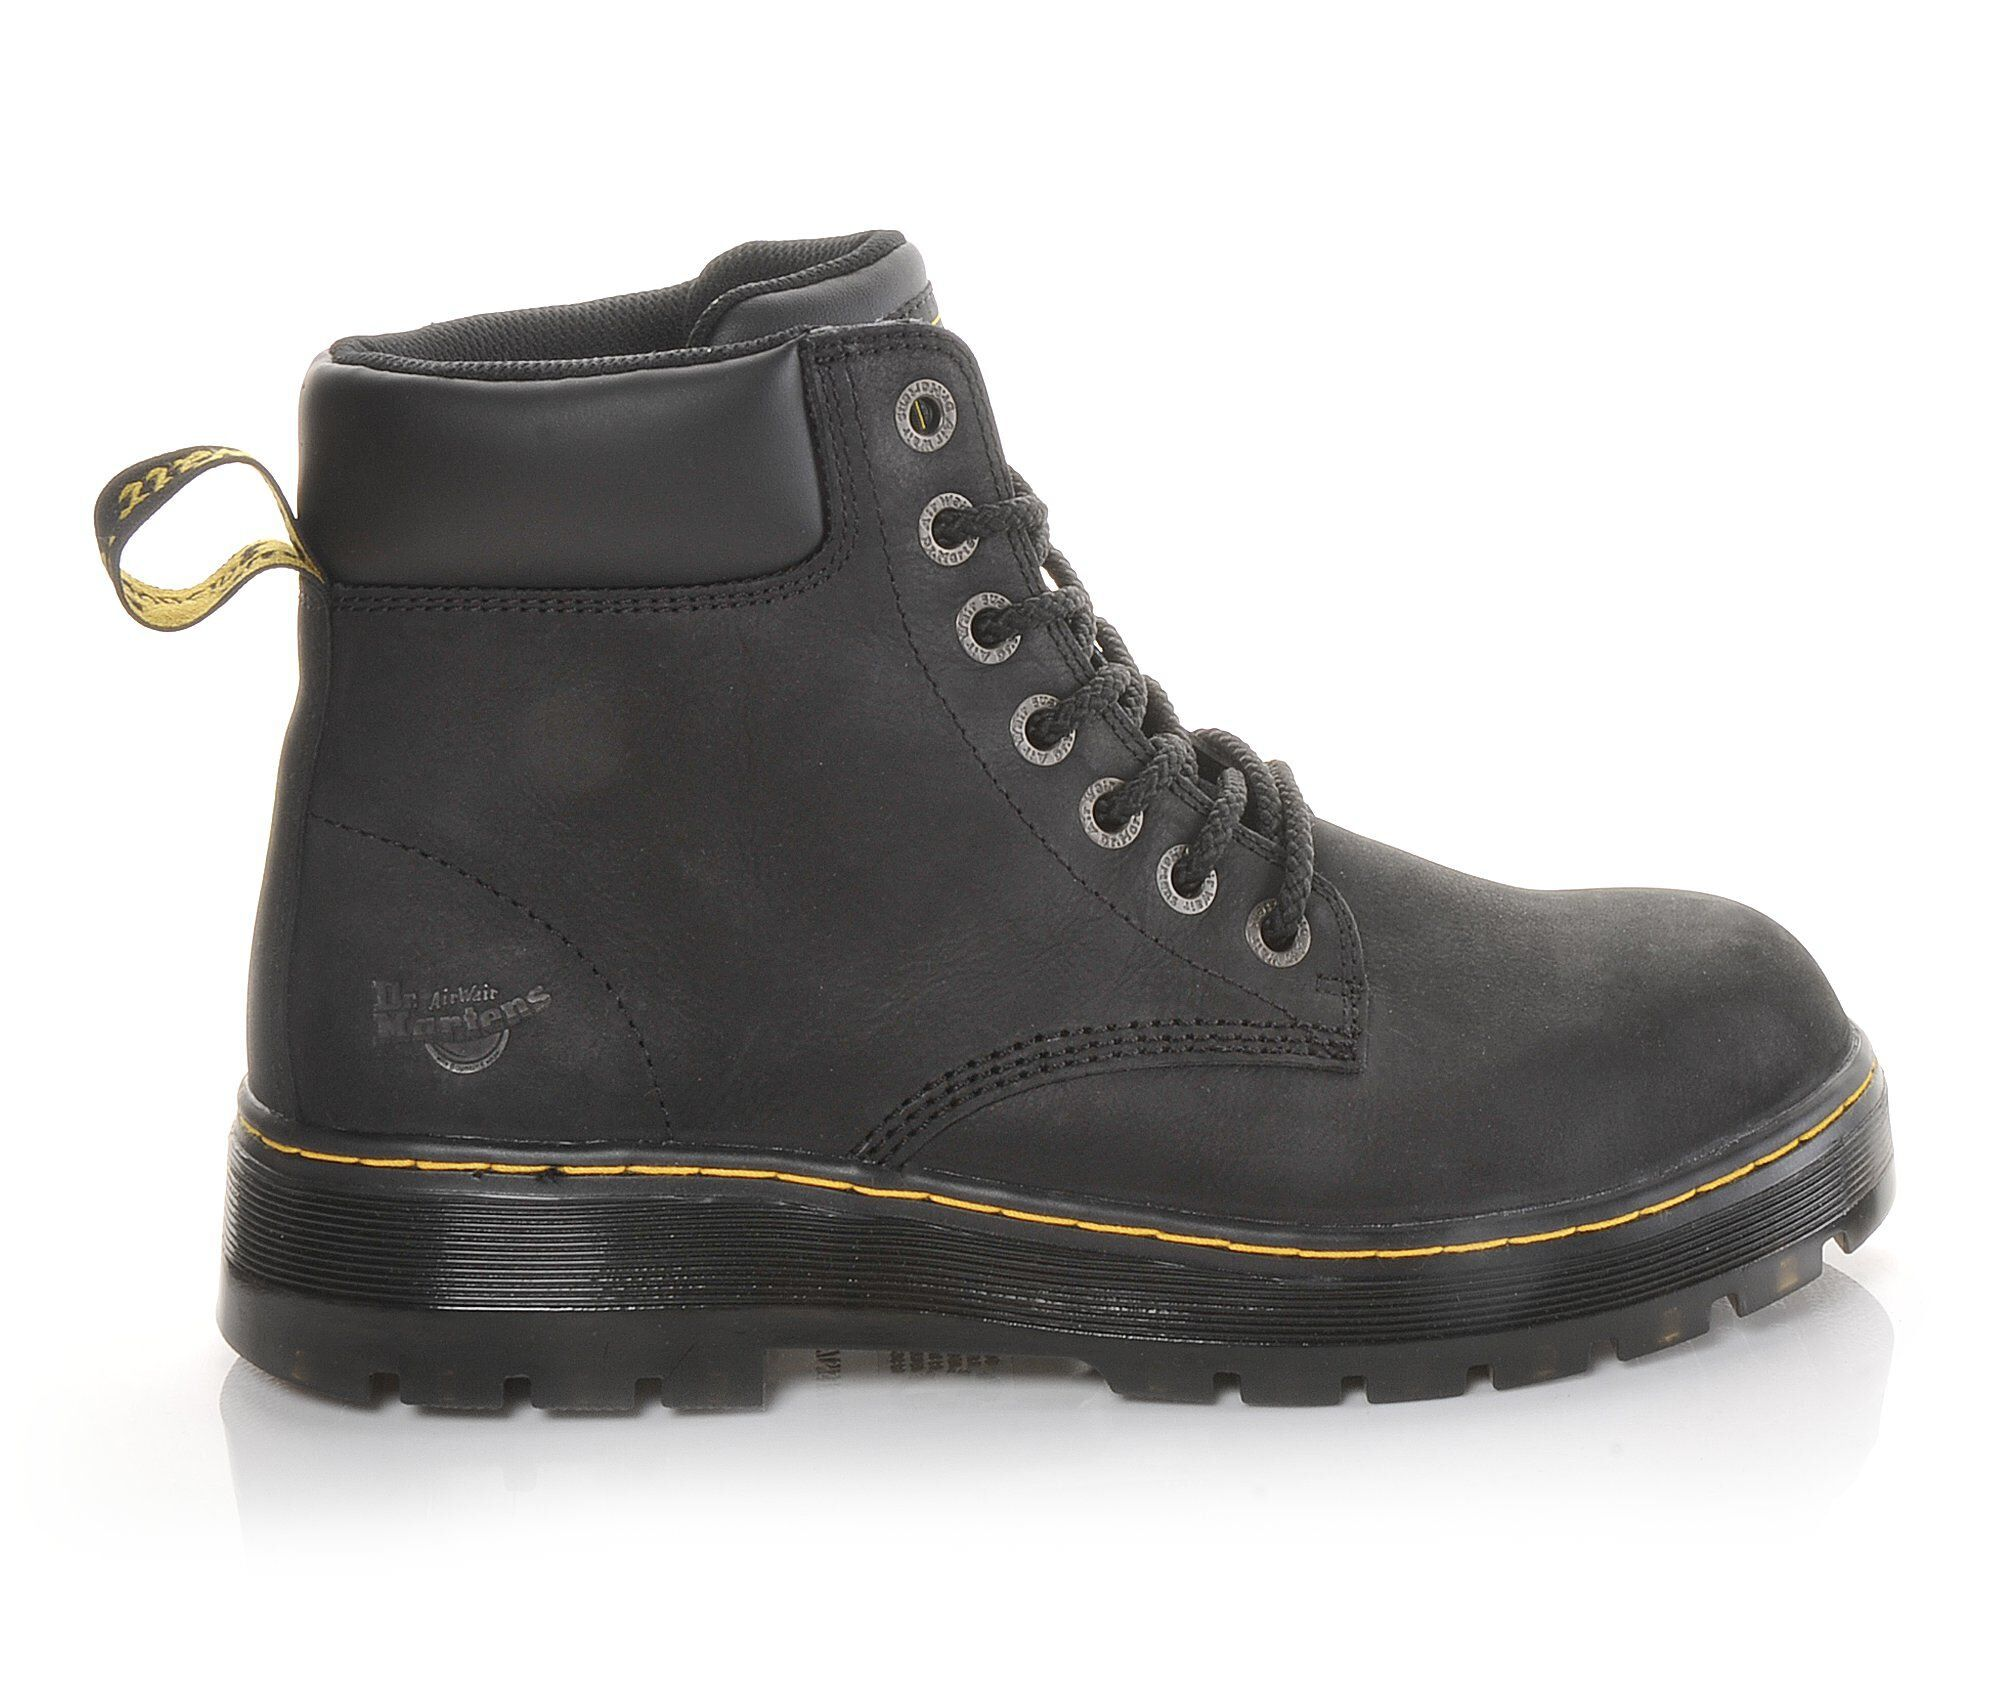 buy greatest Men's Dr. Martens Industrial Winch Steel Toe Work Boots Black Wyoming